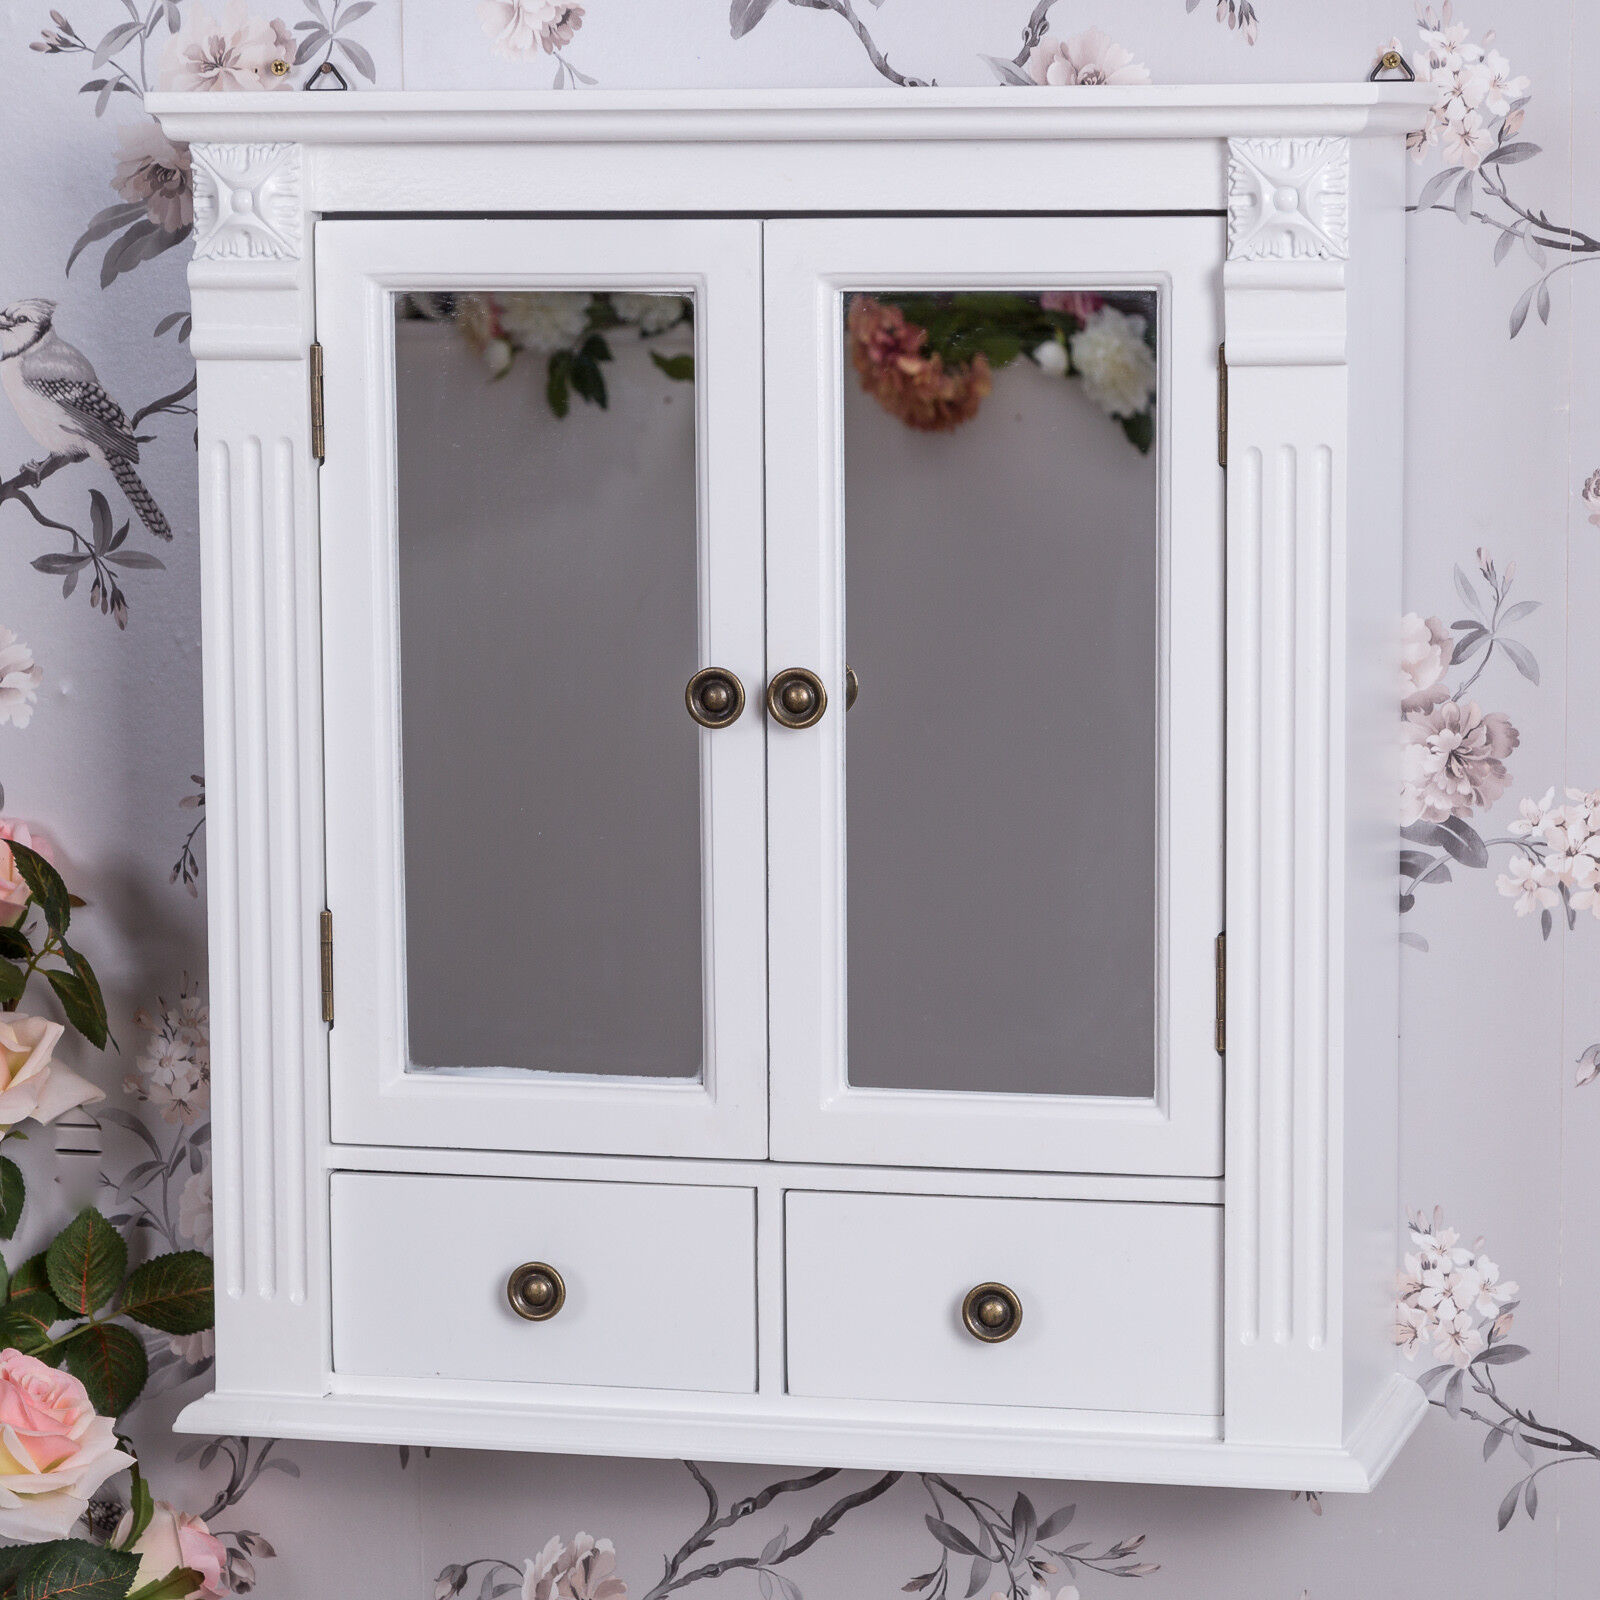 White Wooden Mirrored Bathroom Wall Cabinet Shabby Vintage Chic Cupboard Storage